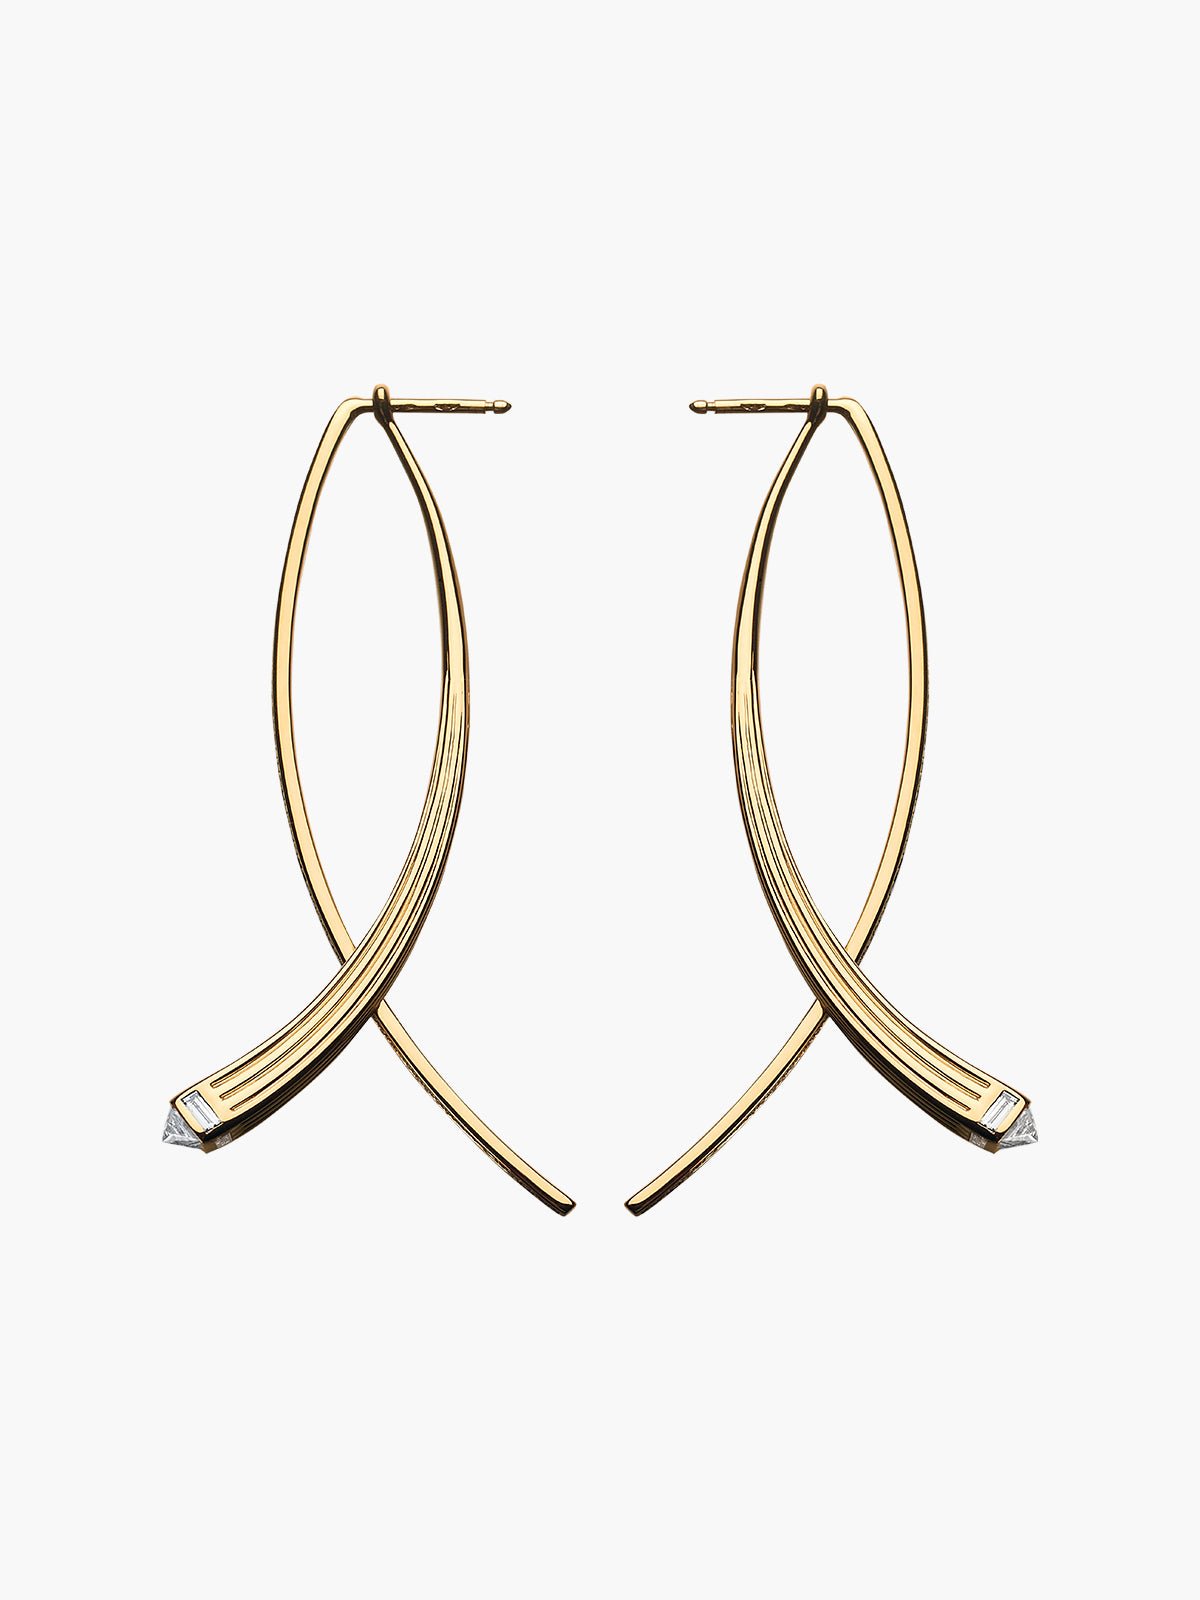 Fluted Double Arc Earrings Fluted Double Arc Earrings